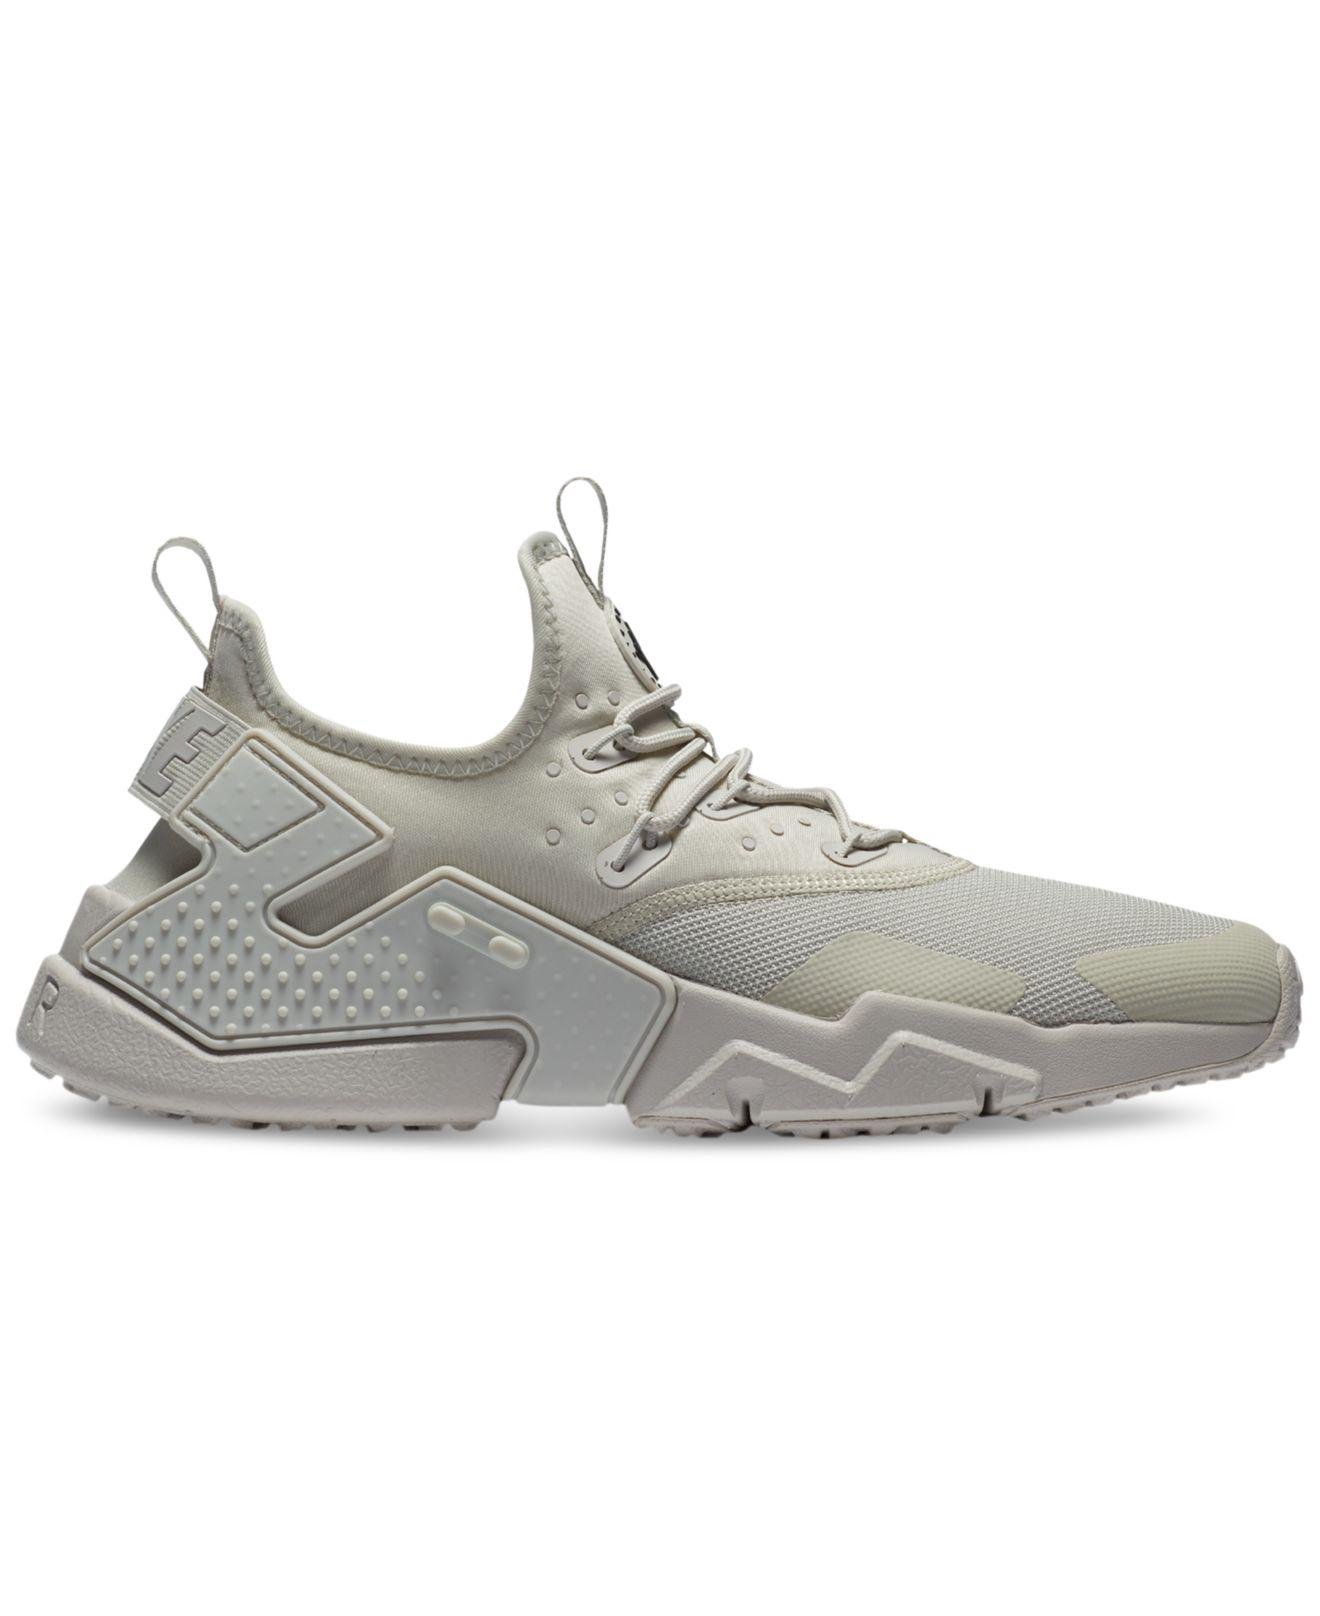 f8fa48a33e8504 Gallery. Previously sold at  Macy s · Men s Running Sneakers Men s Nike  Huarache ...